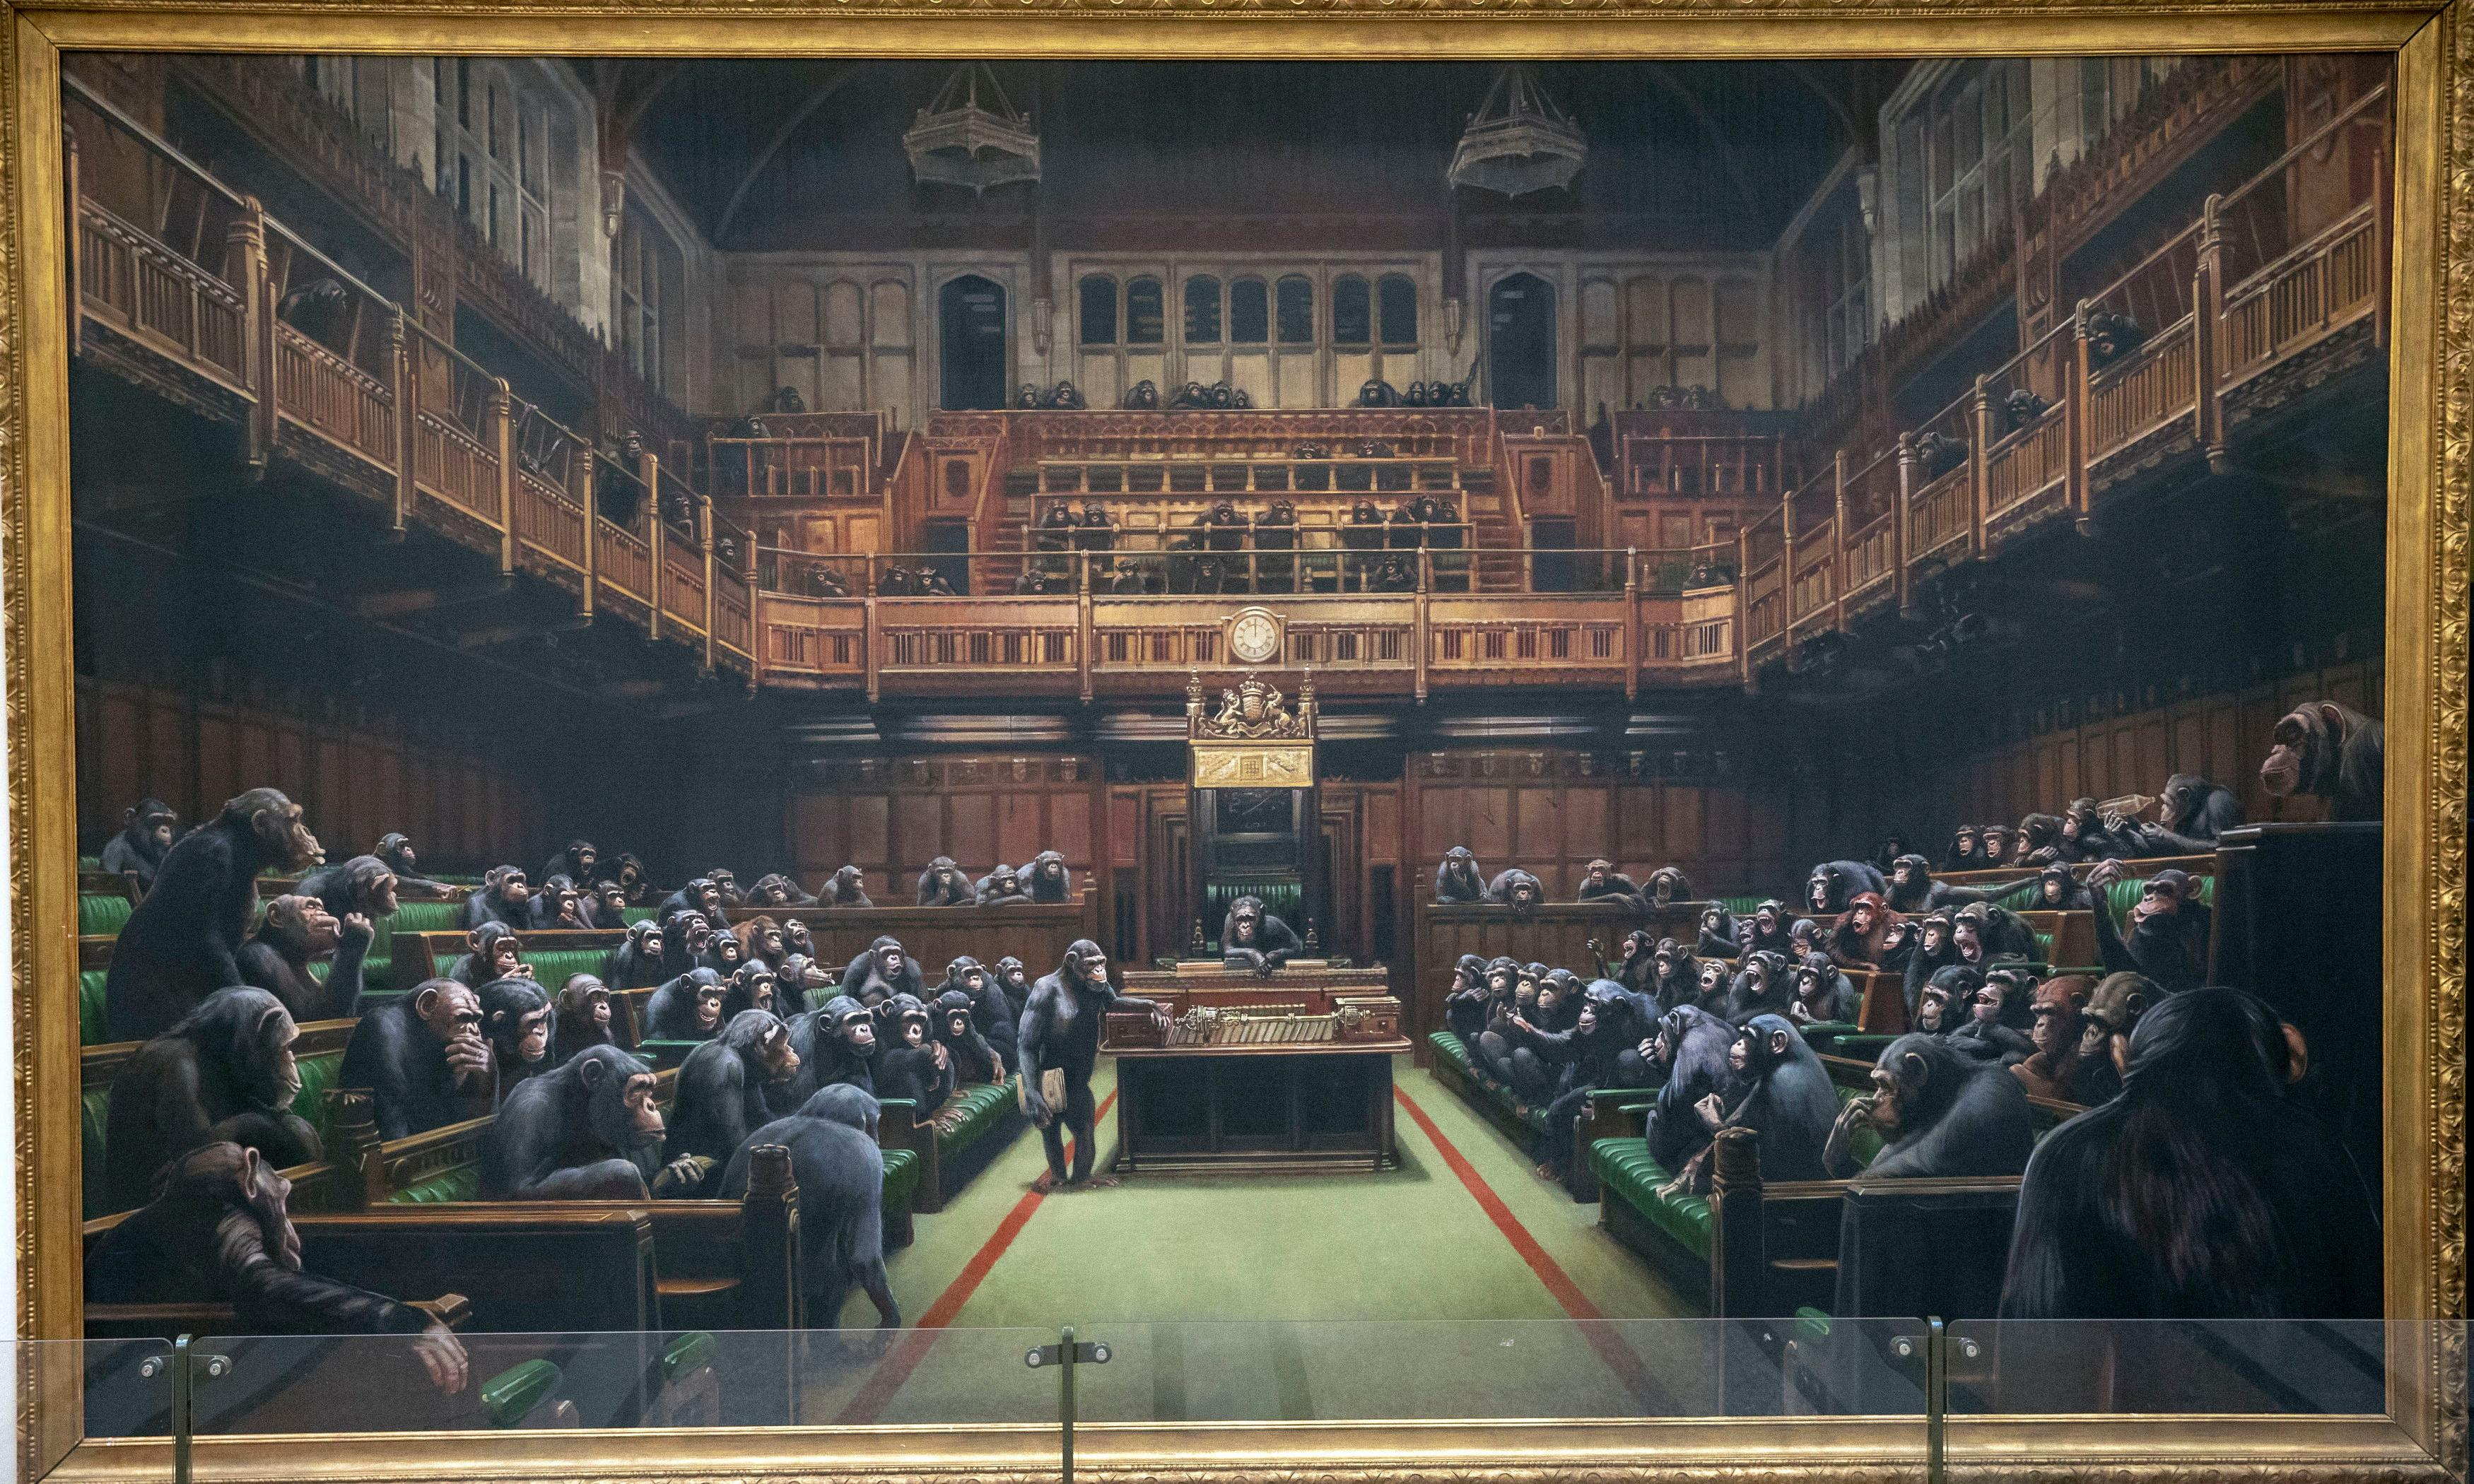 Auction for Banksy artwork depicting MPs as chimpanzees